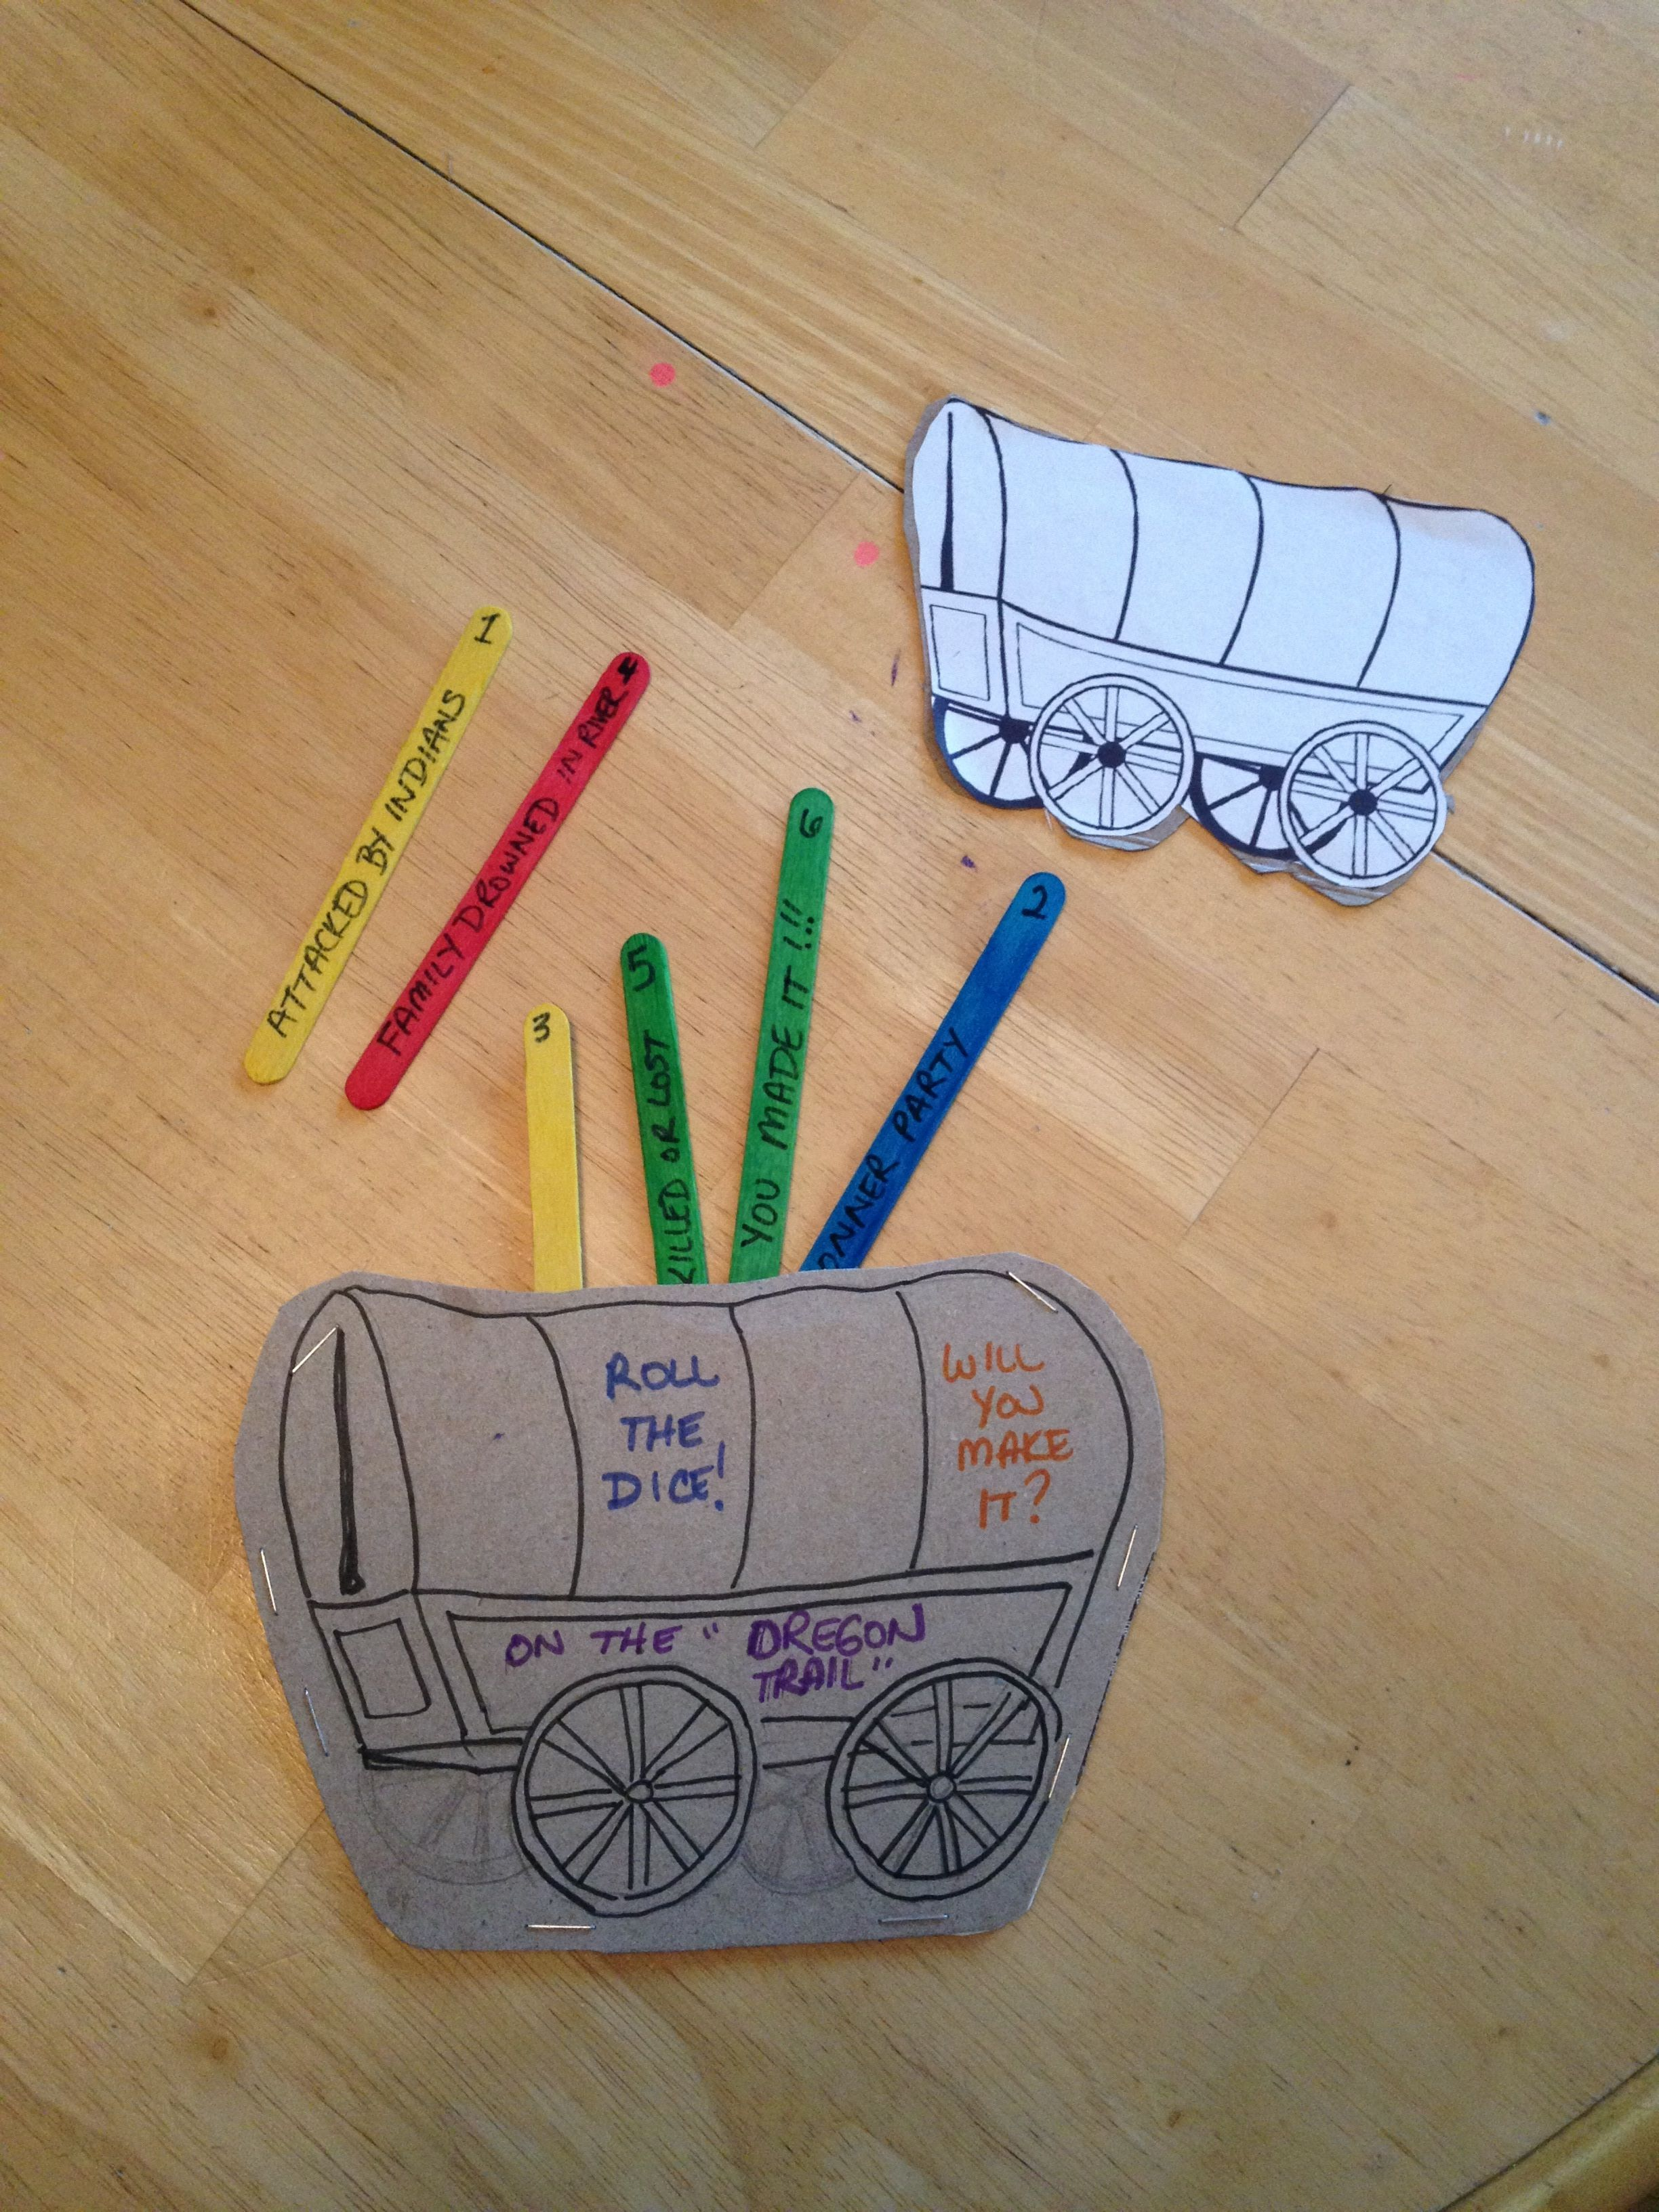 2448x3264 Oregon Trail Activity Draw (Or Print Out) A Prairie Schooner Onto